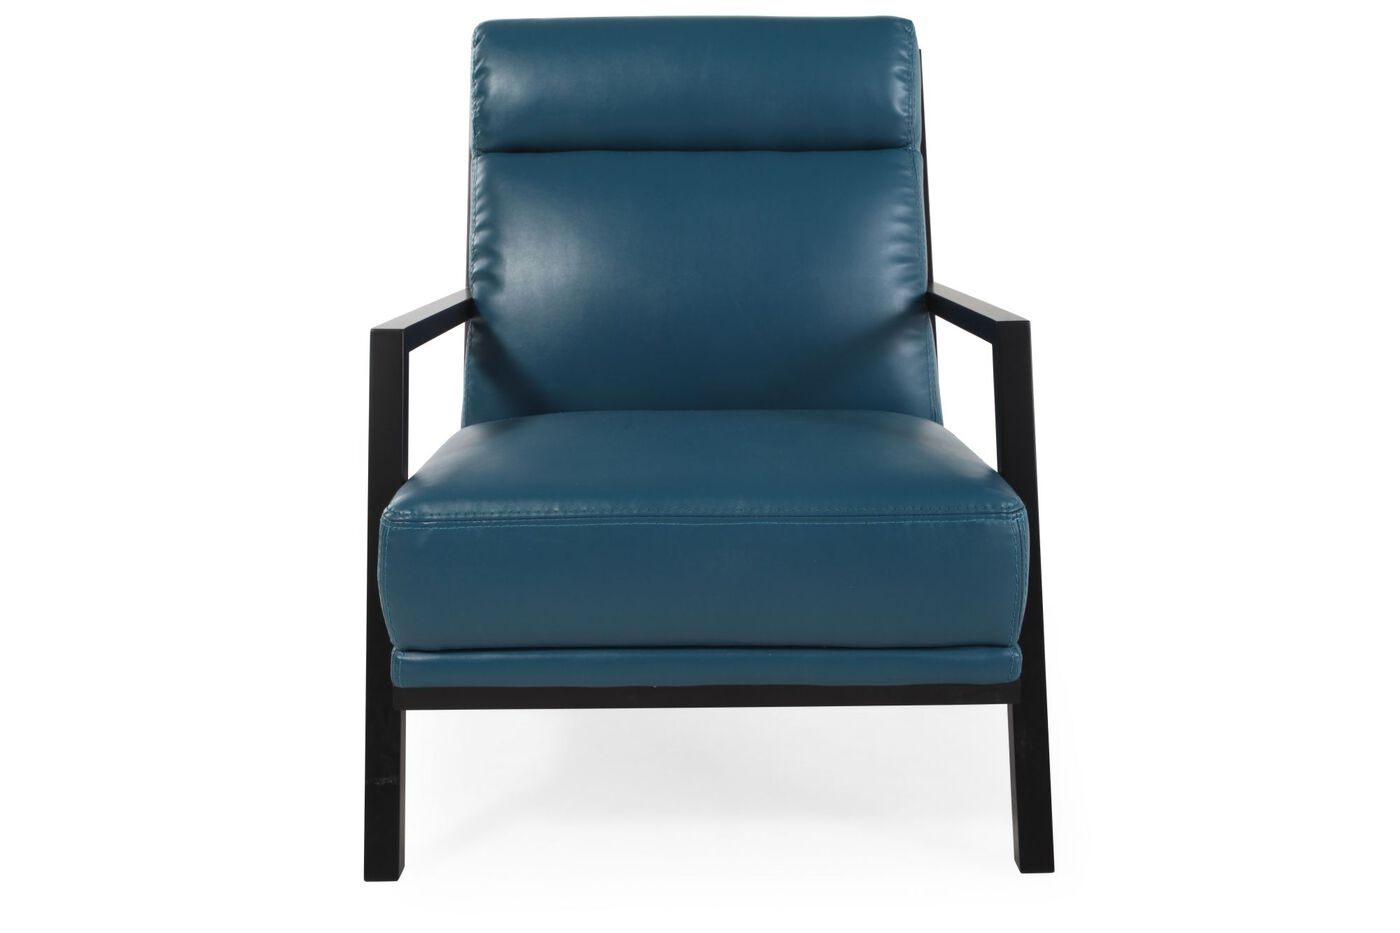 Boulevard Blue Leather Accent Chair. Boulevard Blue Leather Accent Chair   Mathis Brothers Furniture